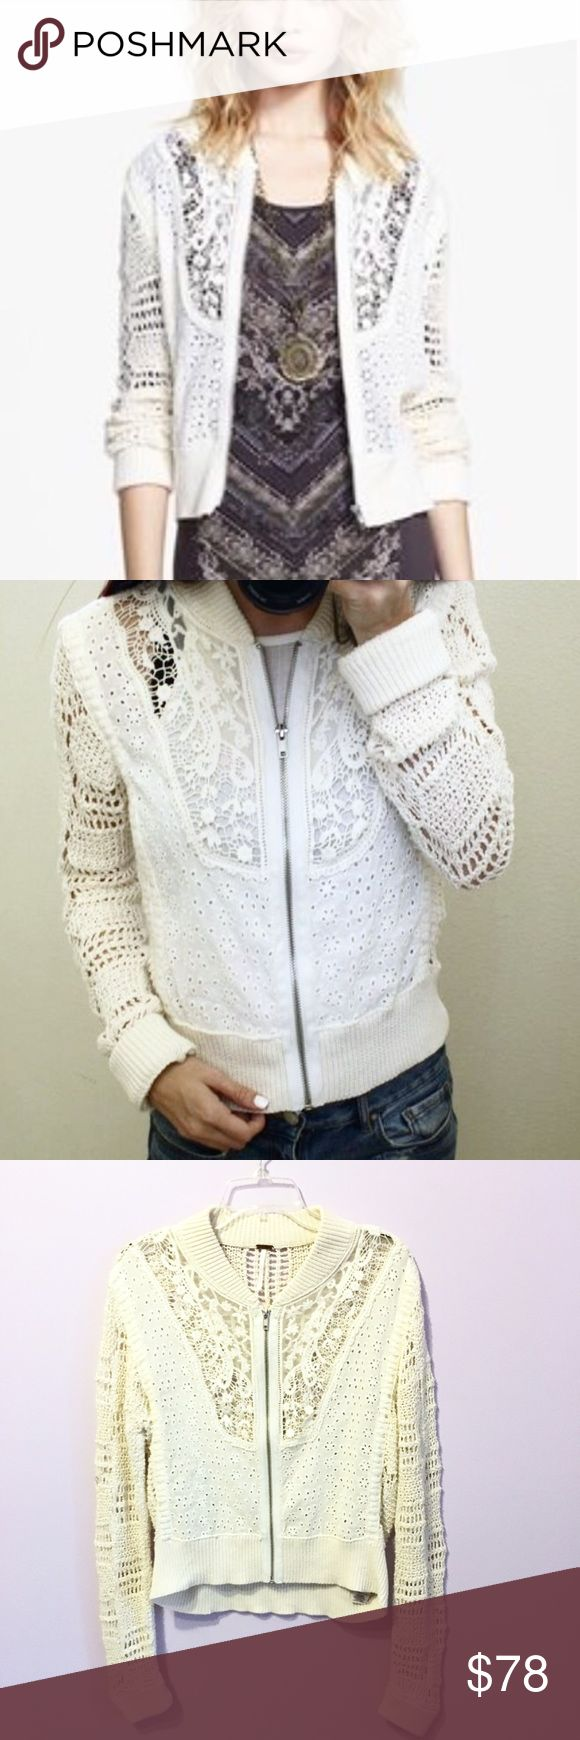 Free People Crochet Zip Up Sweater Jacket This cream colored zip up sweater/jacket is perfect for spring and summer! Light and airy but still adds some warmth. In great condition. Would be good for size M and L. Free People Jackets & Coats